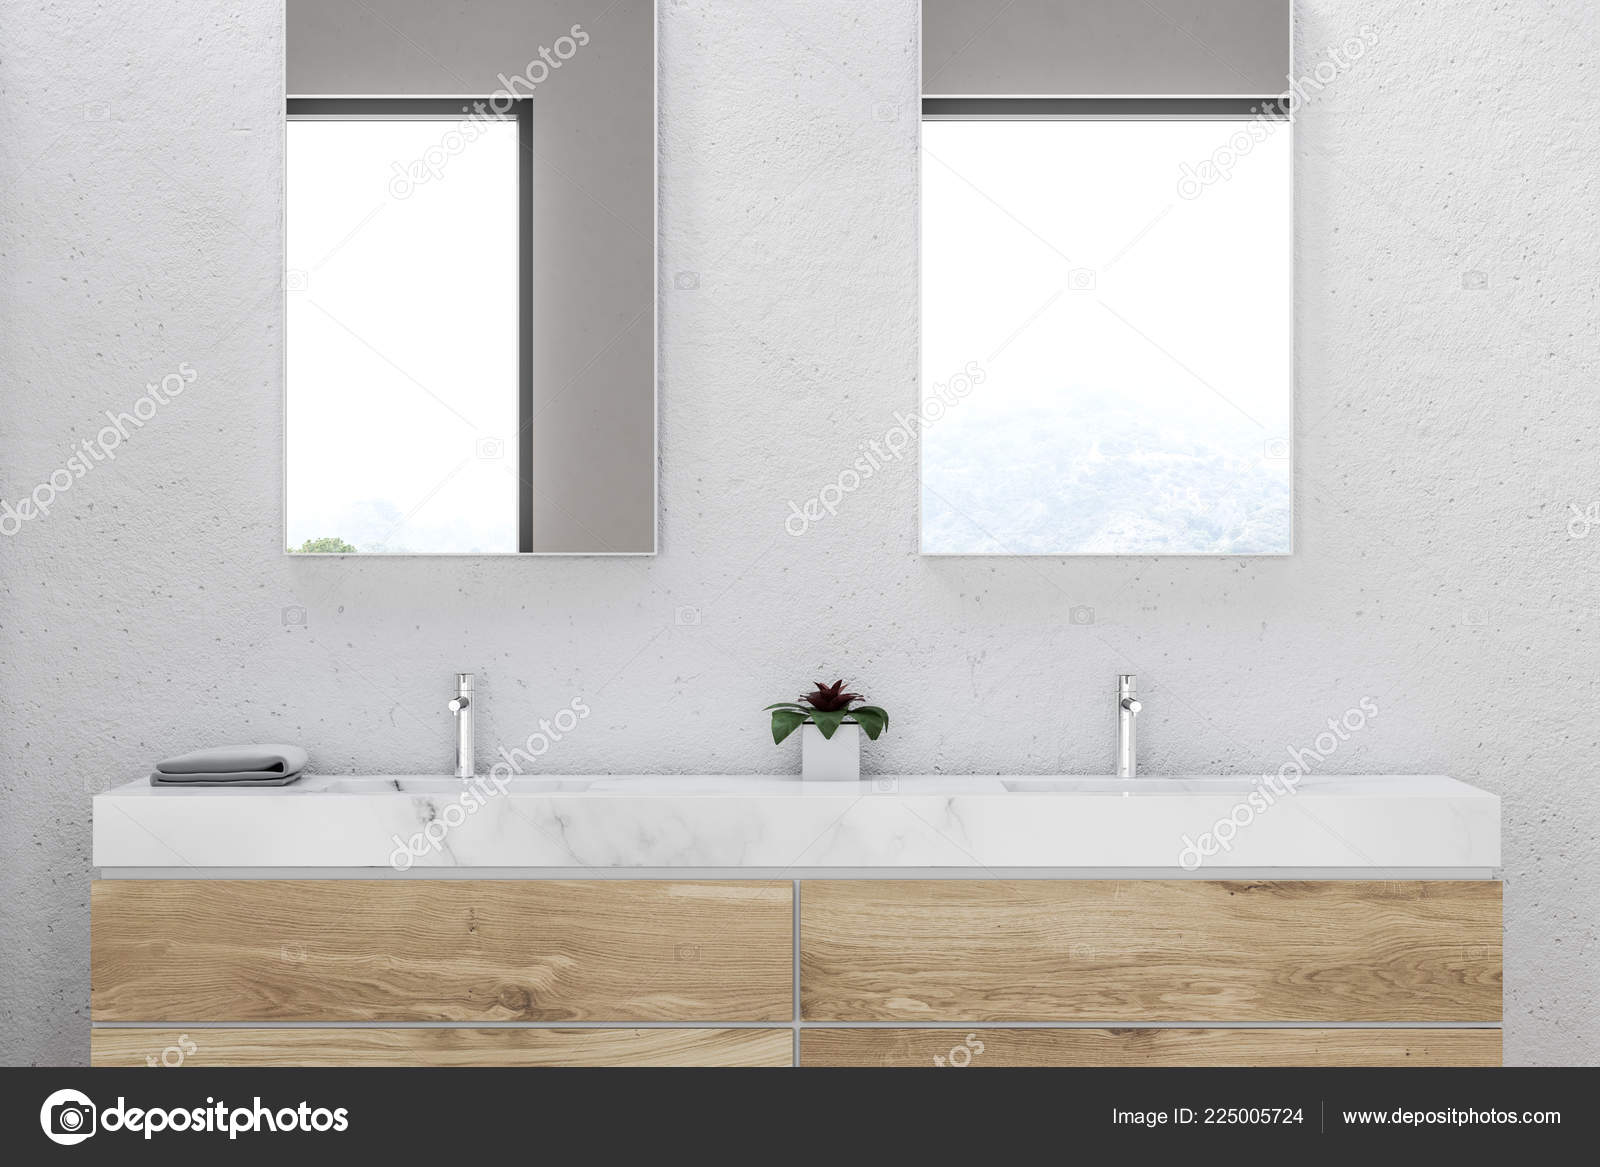 Holzarbeitsplatte Hygiene Close Bathroom Double Sink Made Marble Standing Wooden Countertop